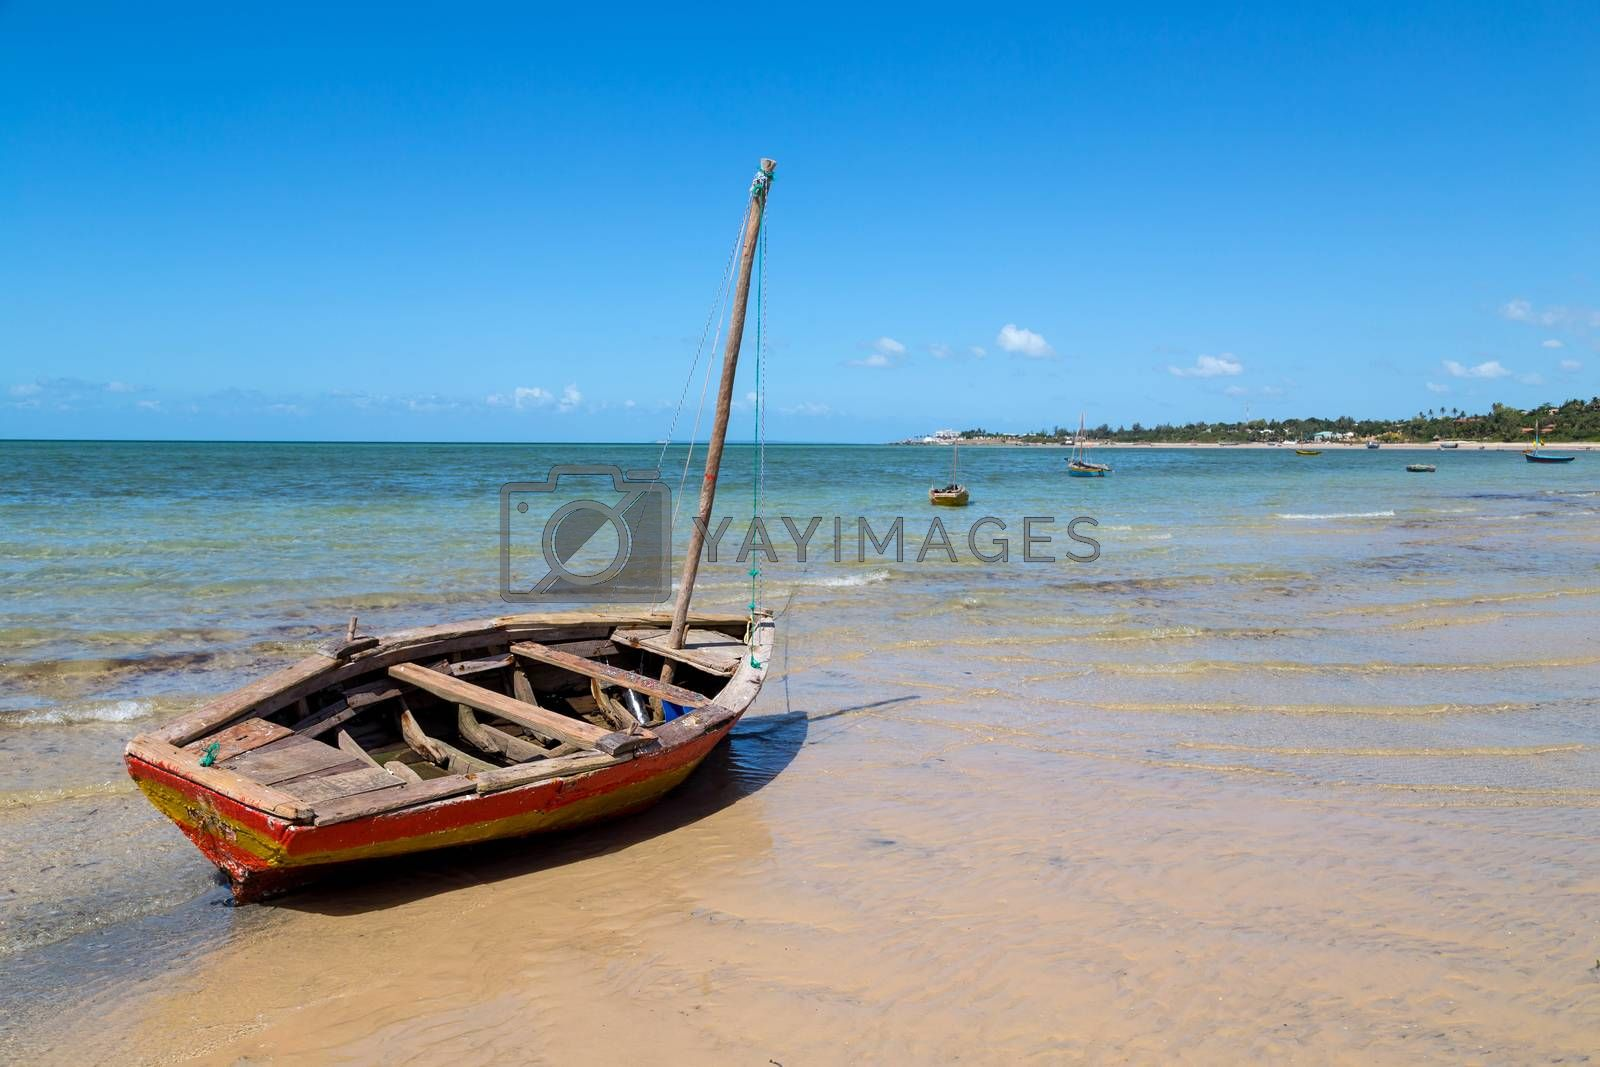 Boats at Magaruque island formerly Ilha Santa Isabel is part of the Bazaruto Archipelago off the coast of Mozambique.